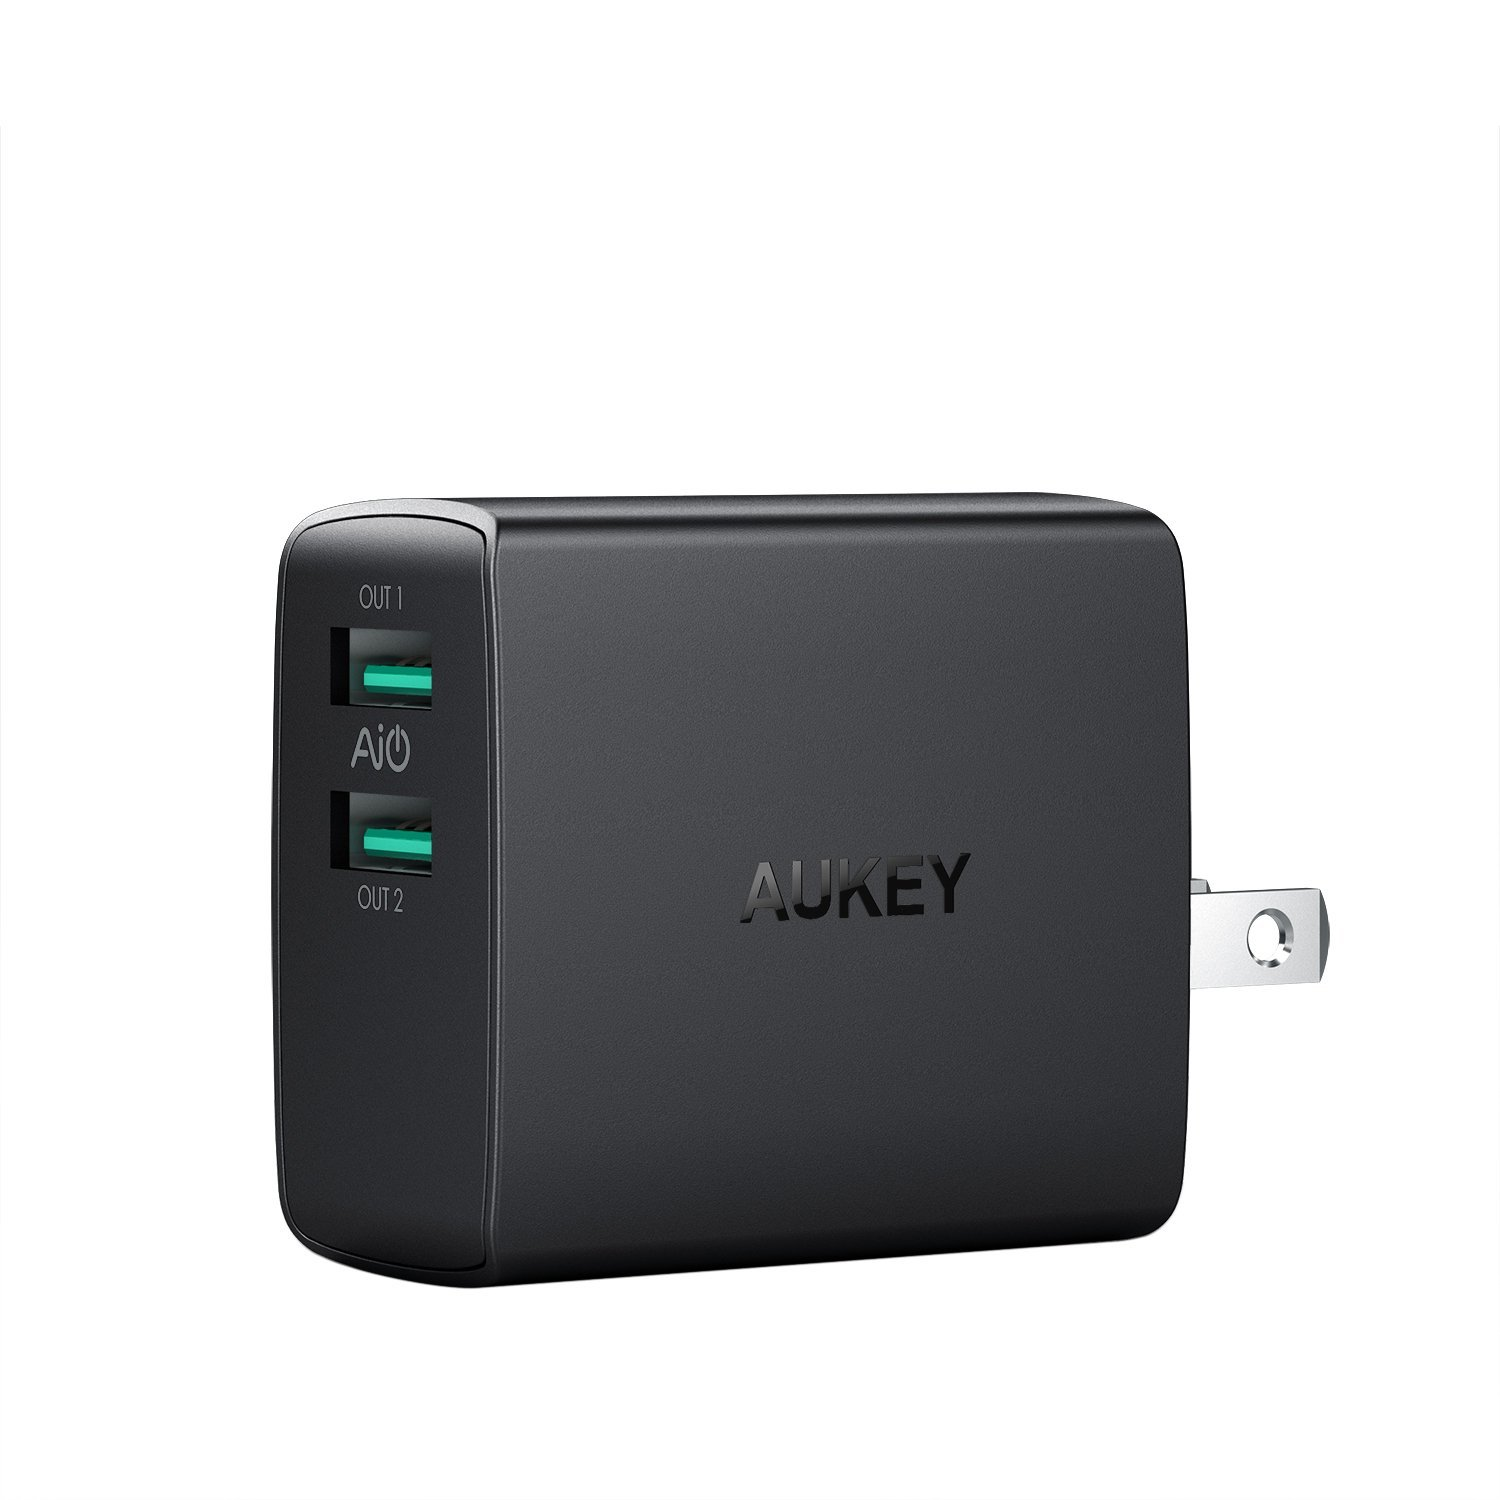 AUKEY USB Wall Charger, ULTRA COMPACT Dual Port 4.8A Output & Foldable Plug for iPhone X/8/7/Plus, iPad Air 2, Kindle Fire and More